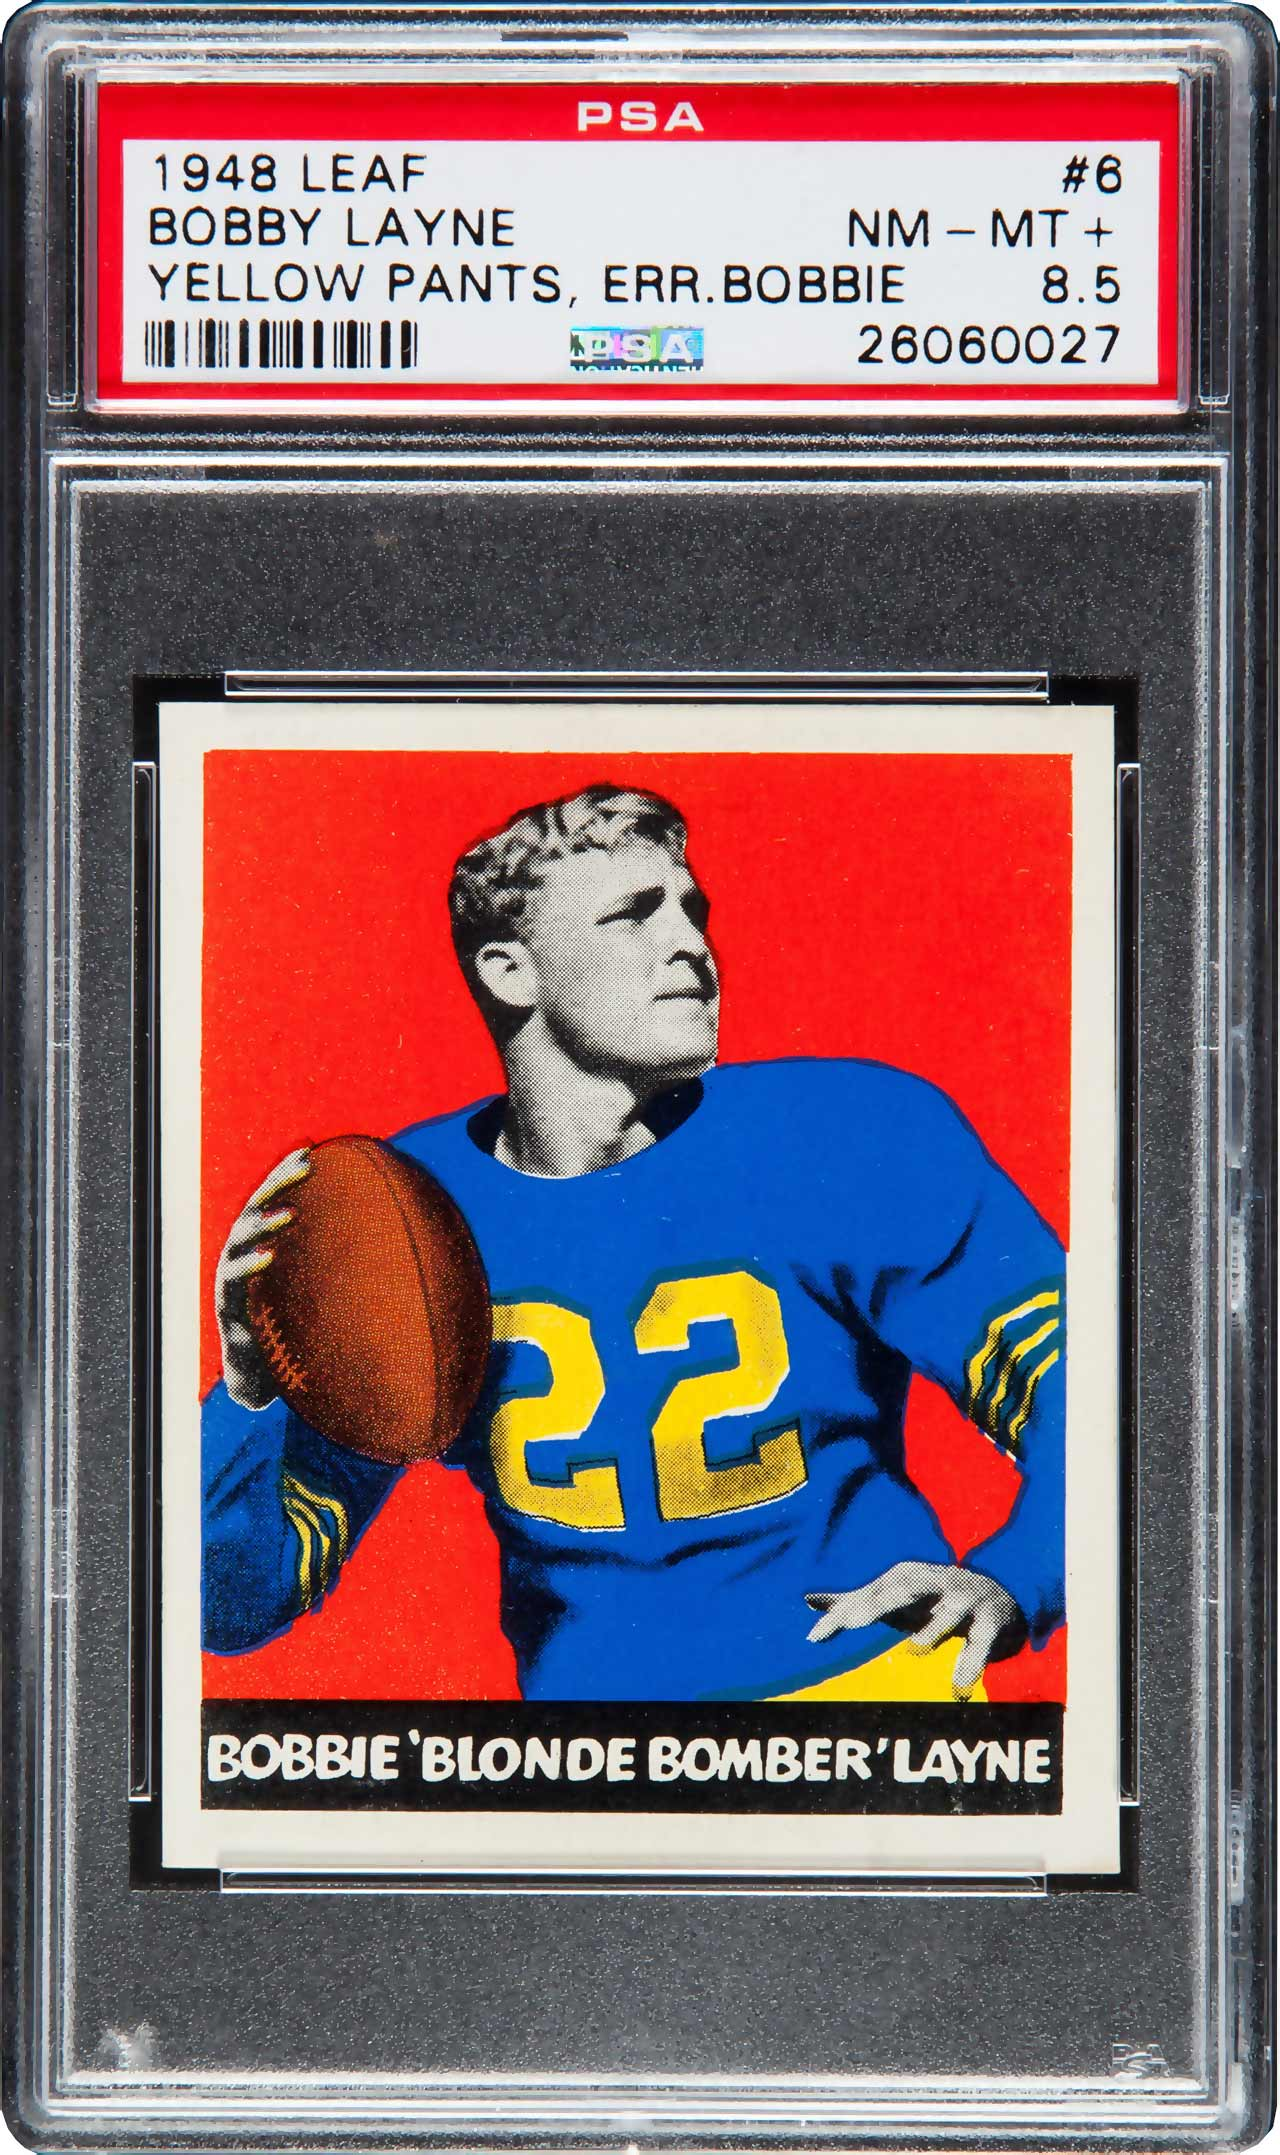 1935 Bronko Nagurski And The Top Ten Most Valuable Football